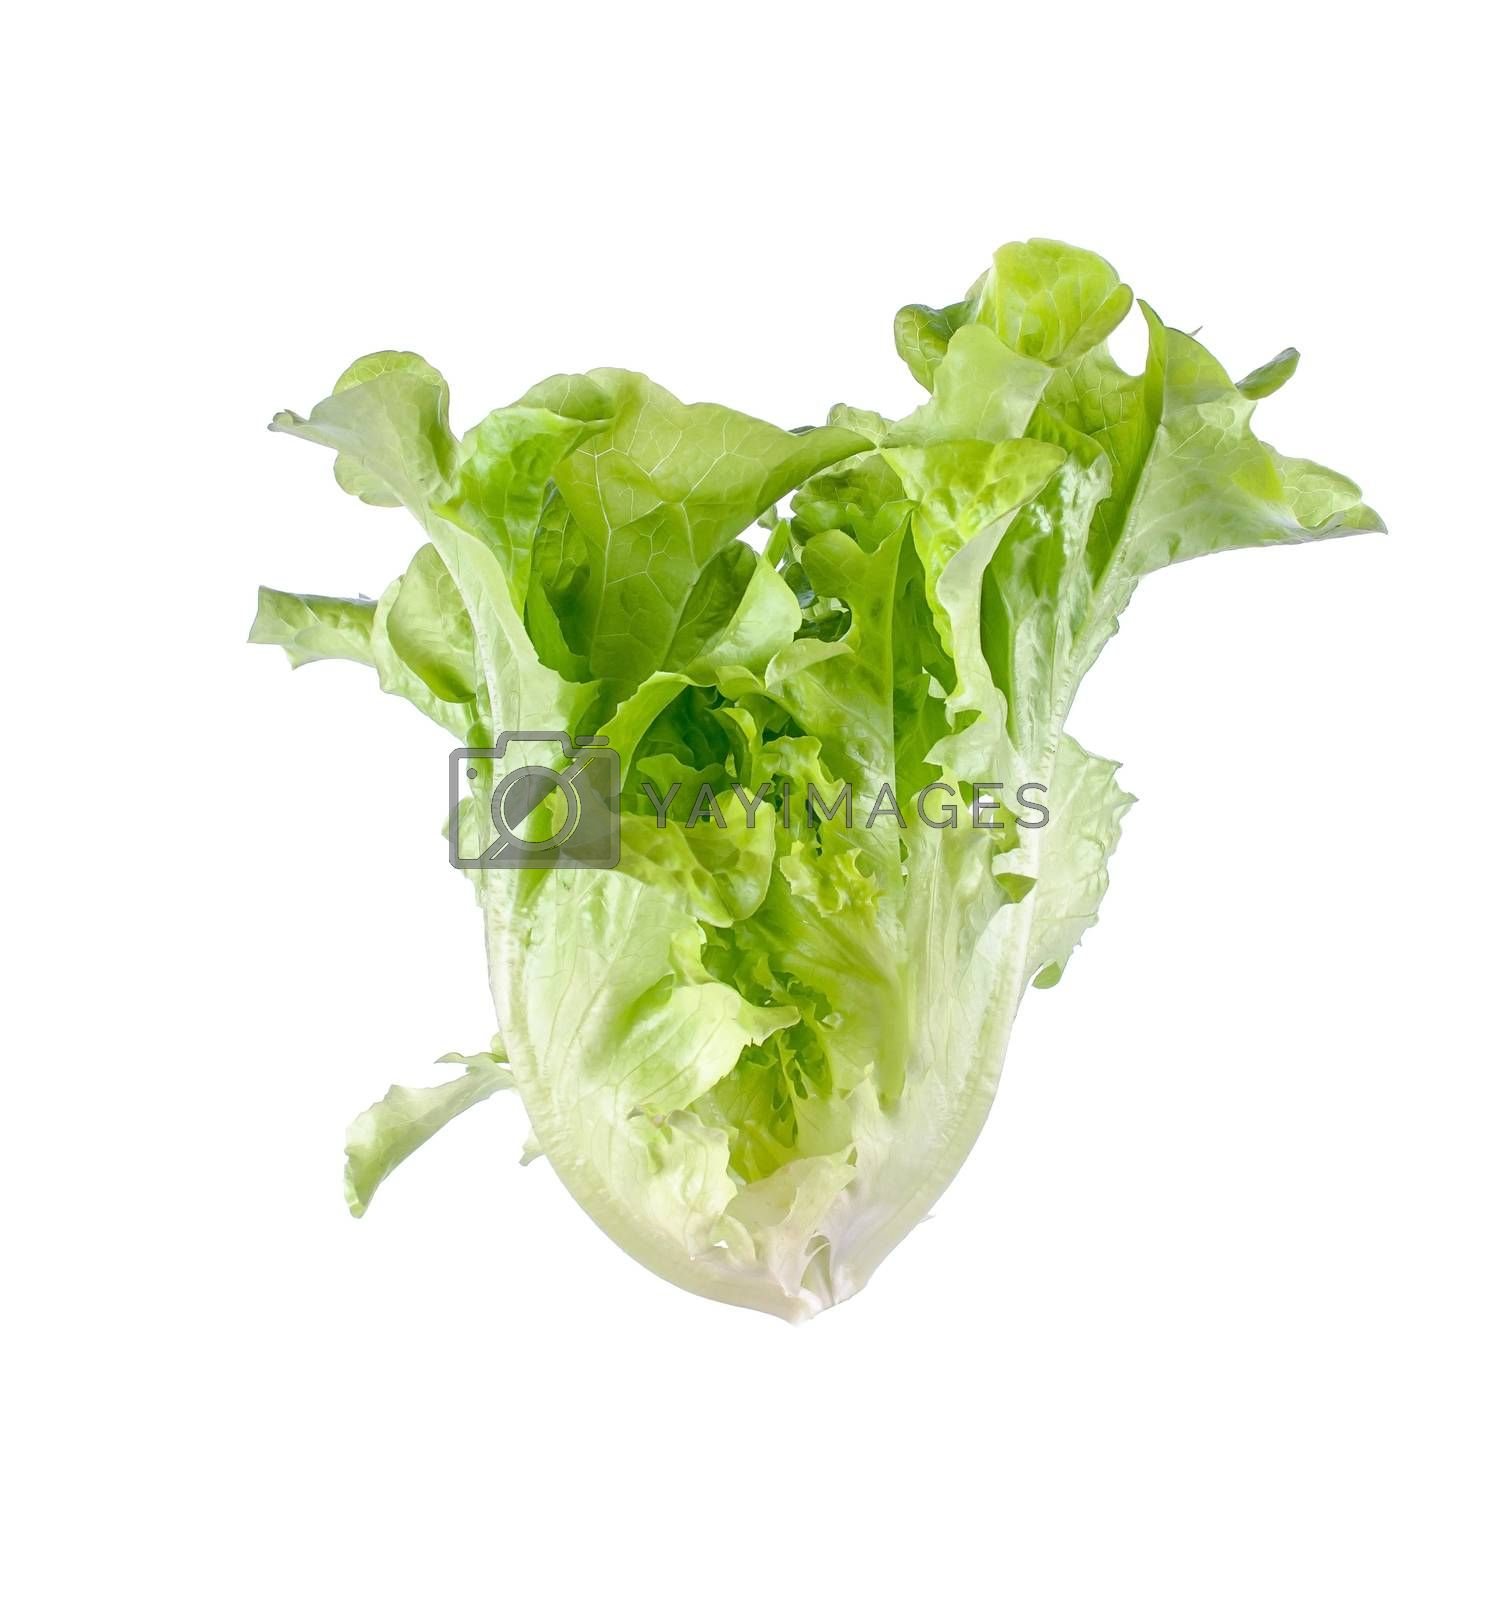 leaf lettuce close up on white.